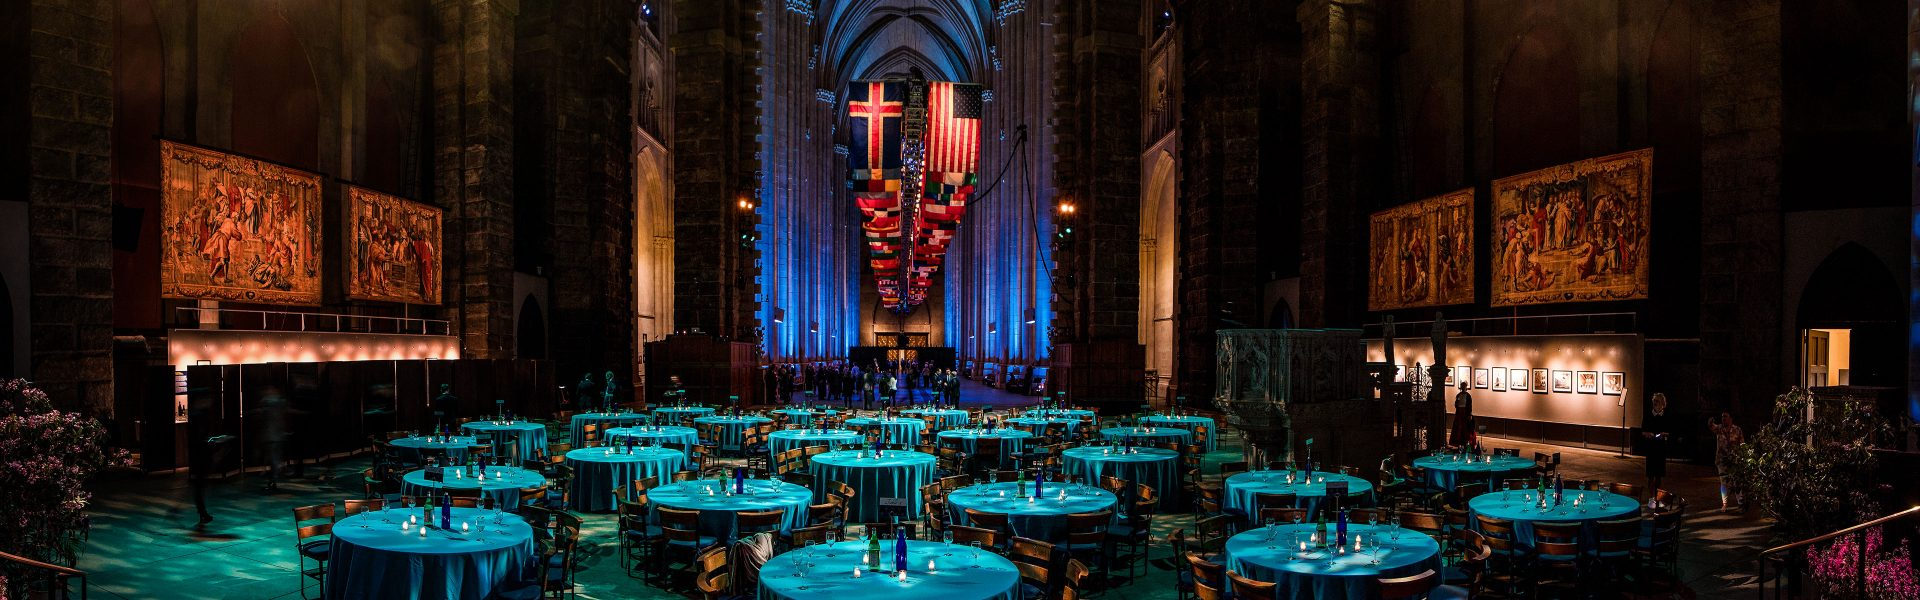 Indoor catered social event with blue lighting